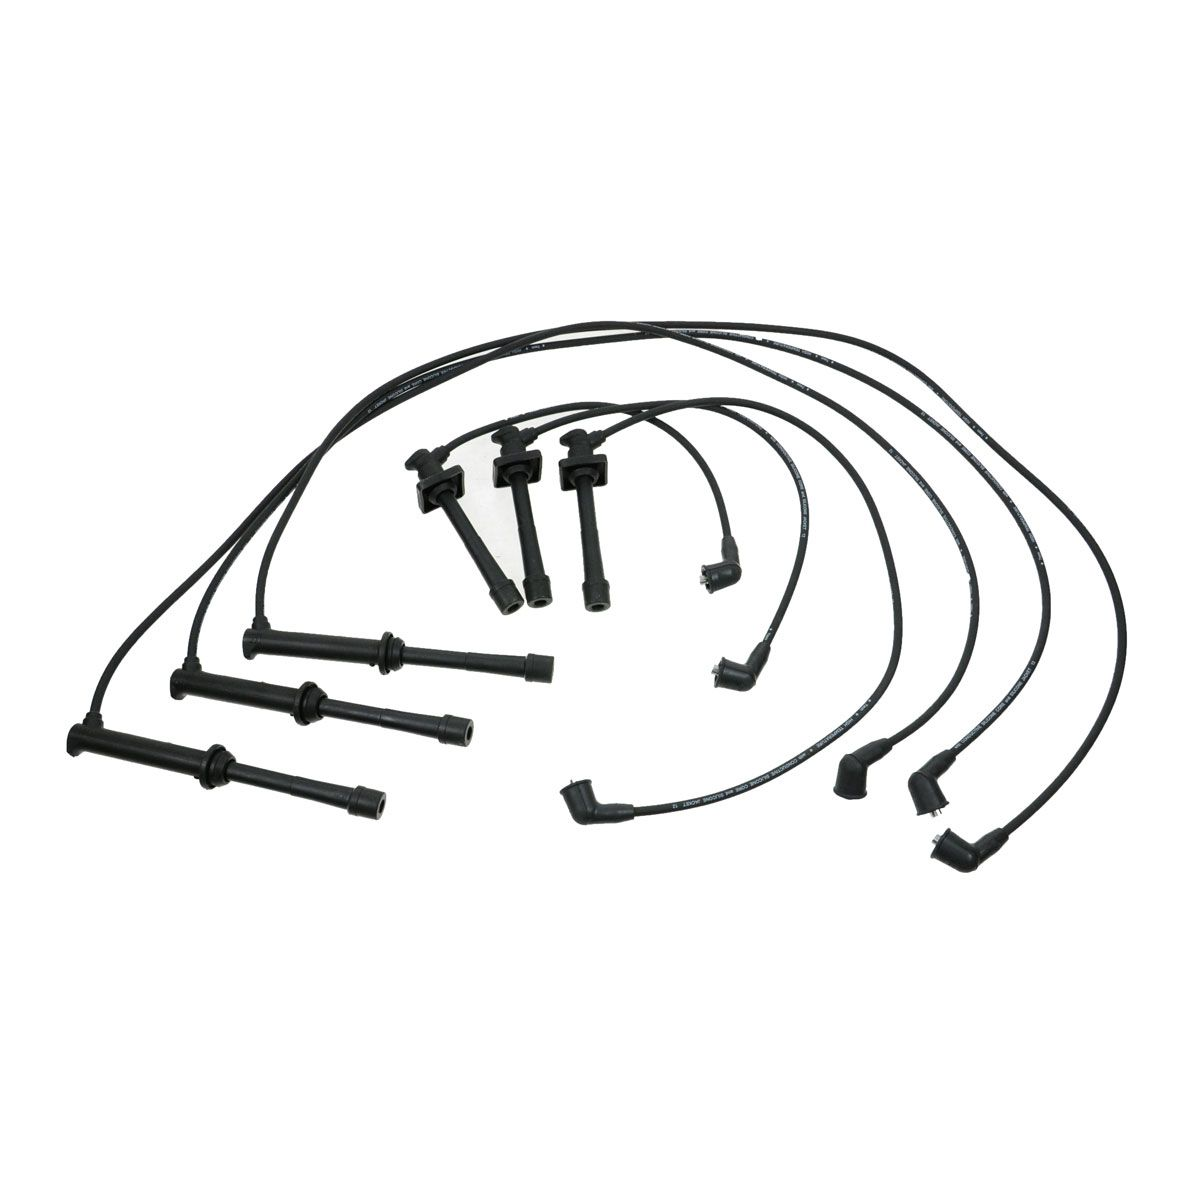 Ignition Spark Plug Wire Set Kit For Ford Probe Mazda 626 Millenia Mx 6 2 5l